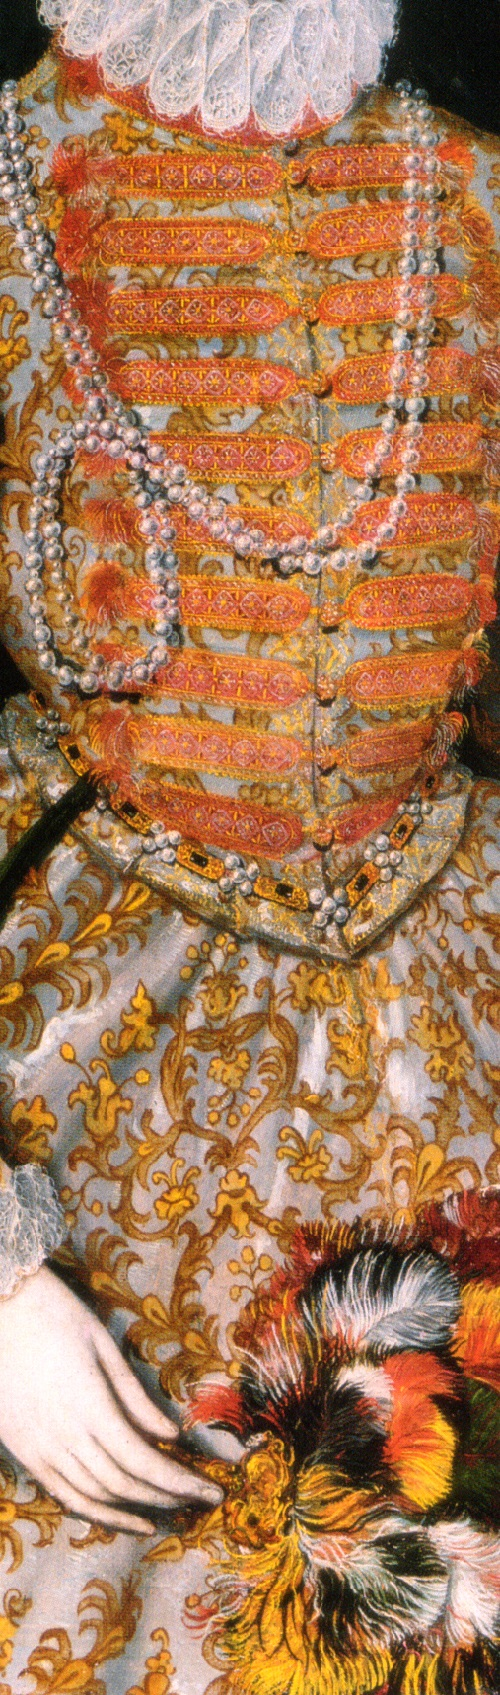 The 'Darnley Portrait' of Elizabeth I (c. 1575), detail